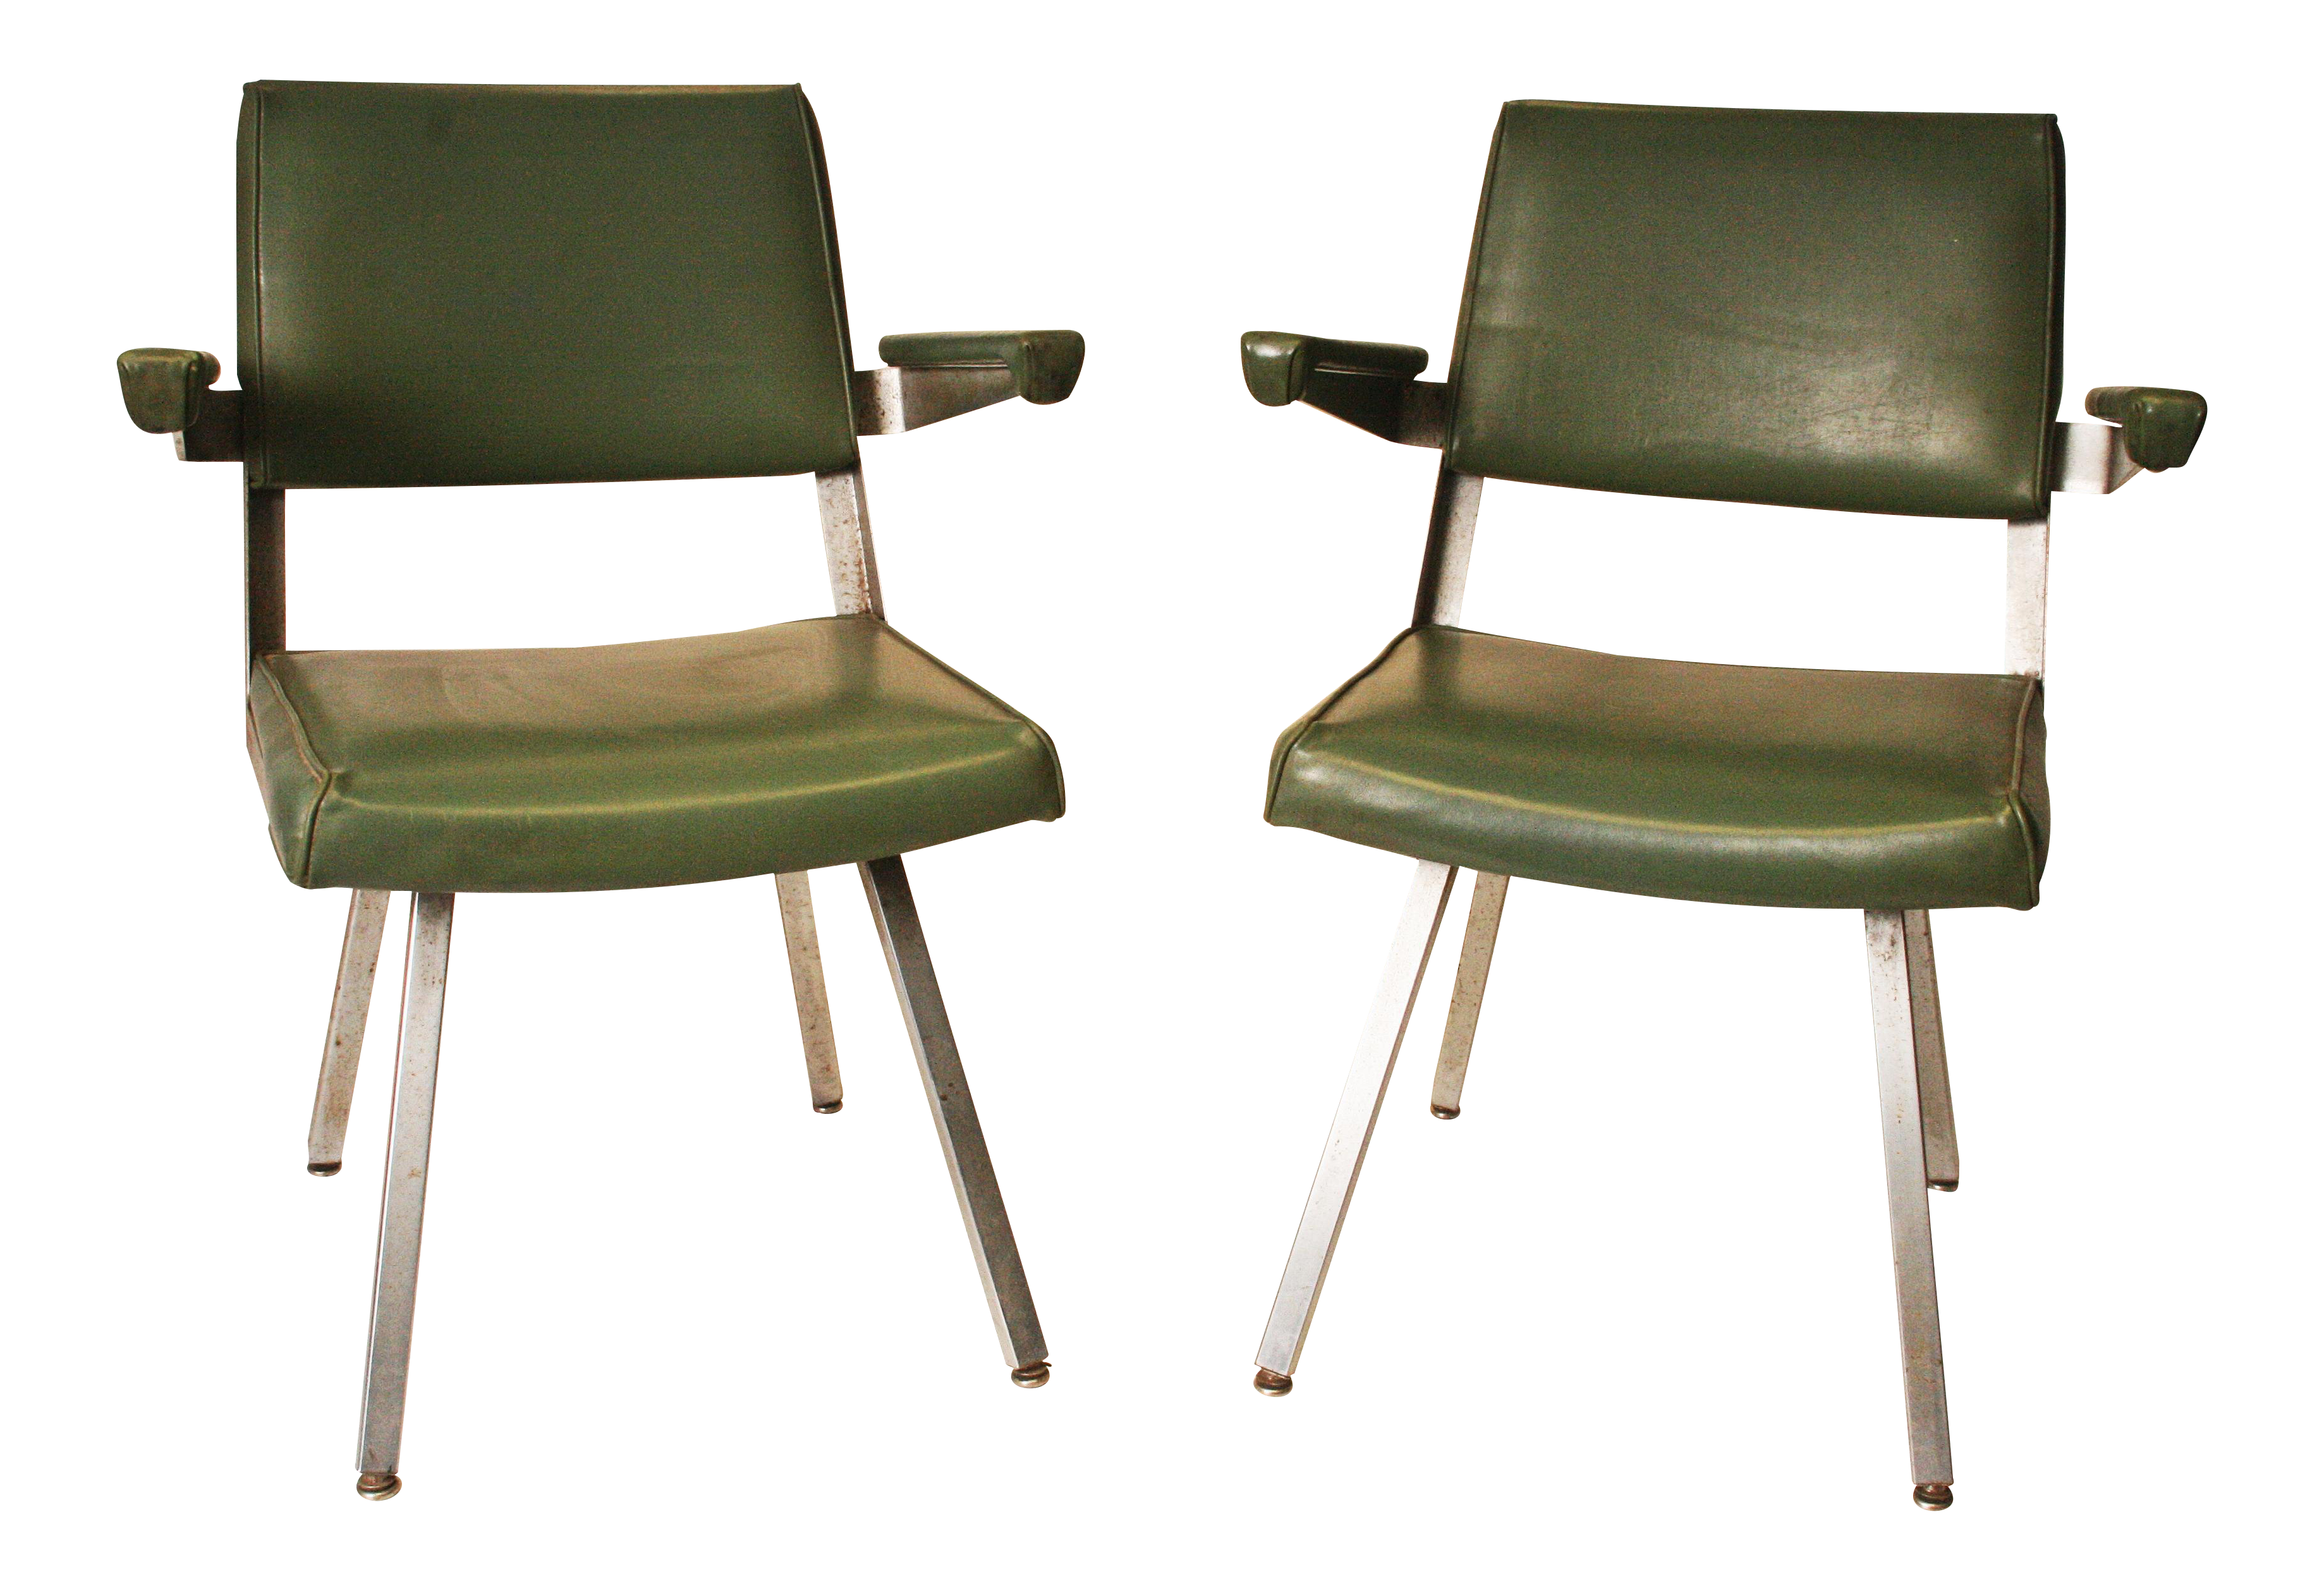 industrial office chairs. harter midcentury modern industrial office chairs a pair image 1 of 11 i